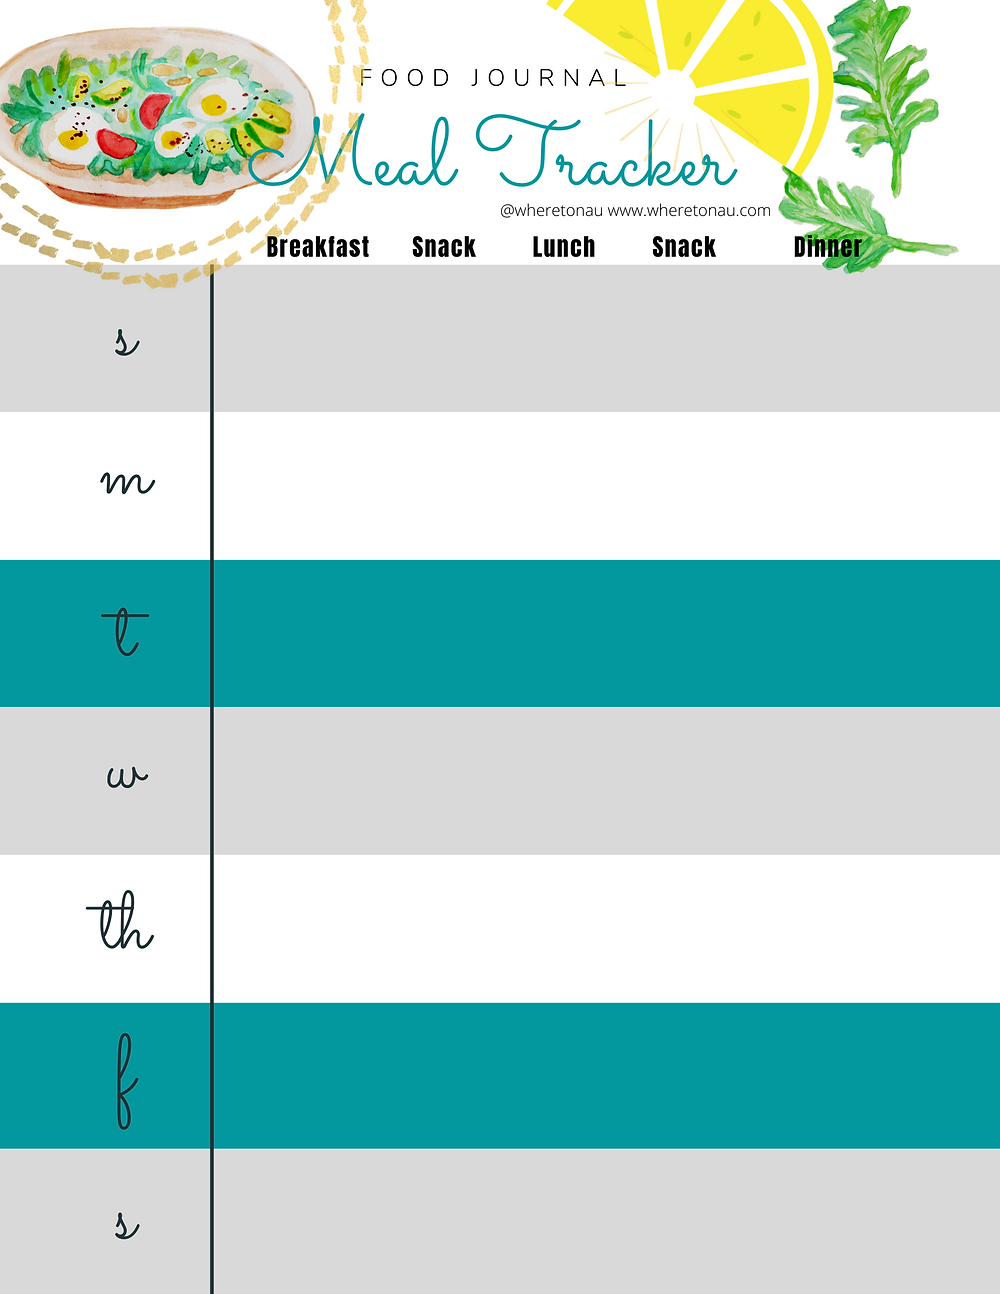 Meal tracker weekly log to eat well and create good habits.